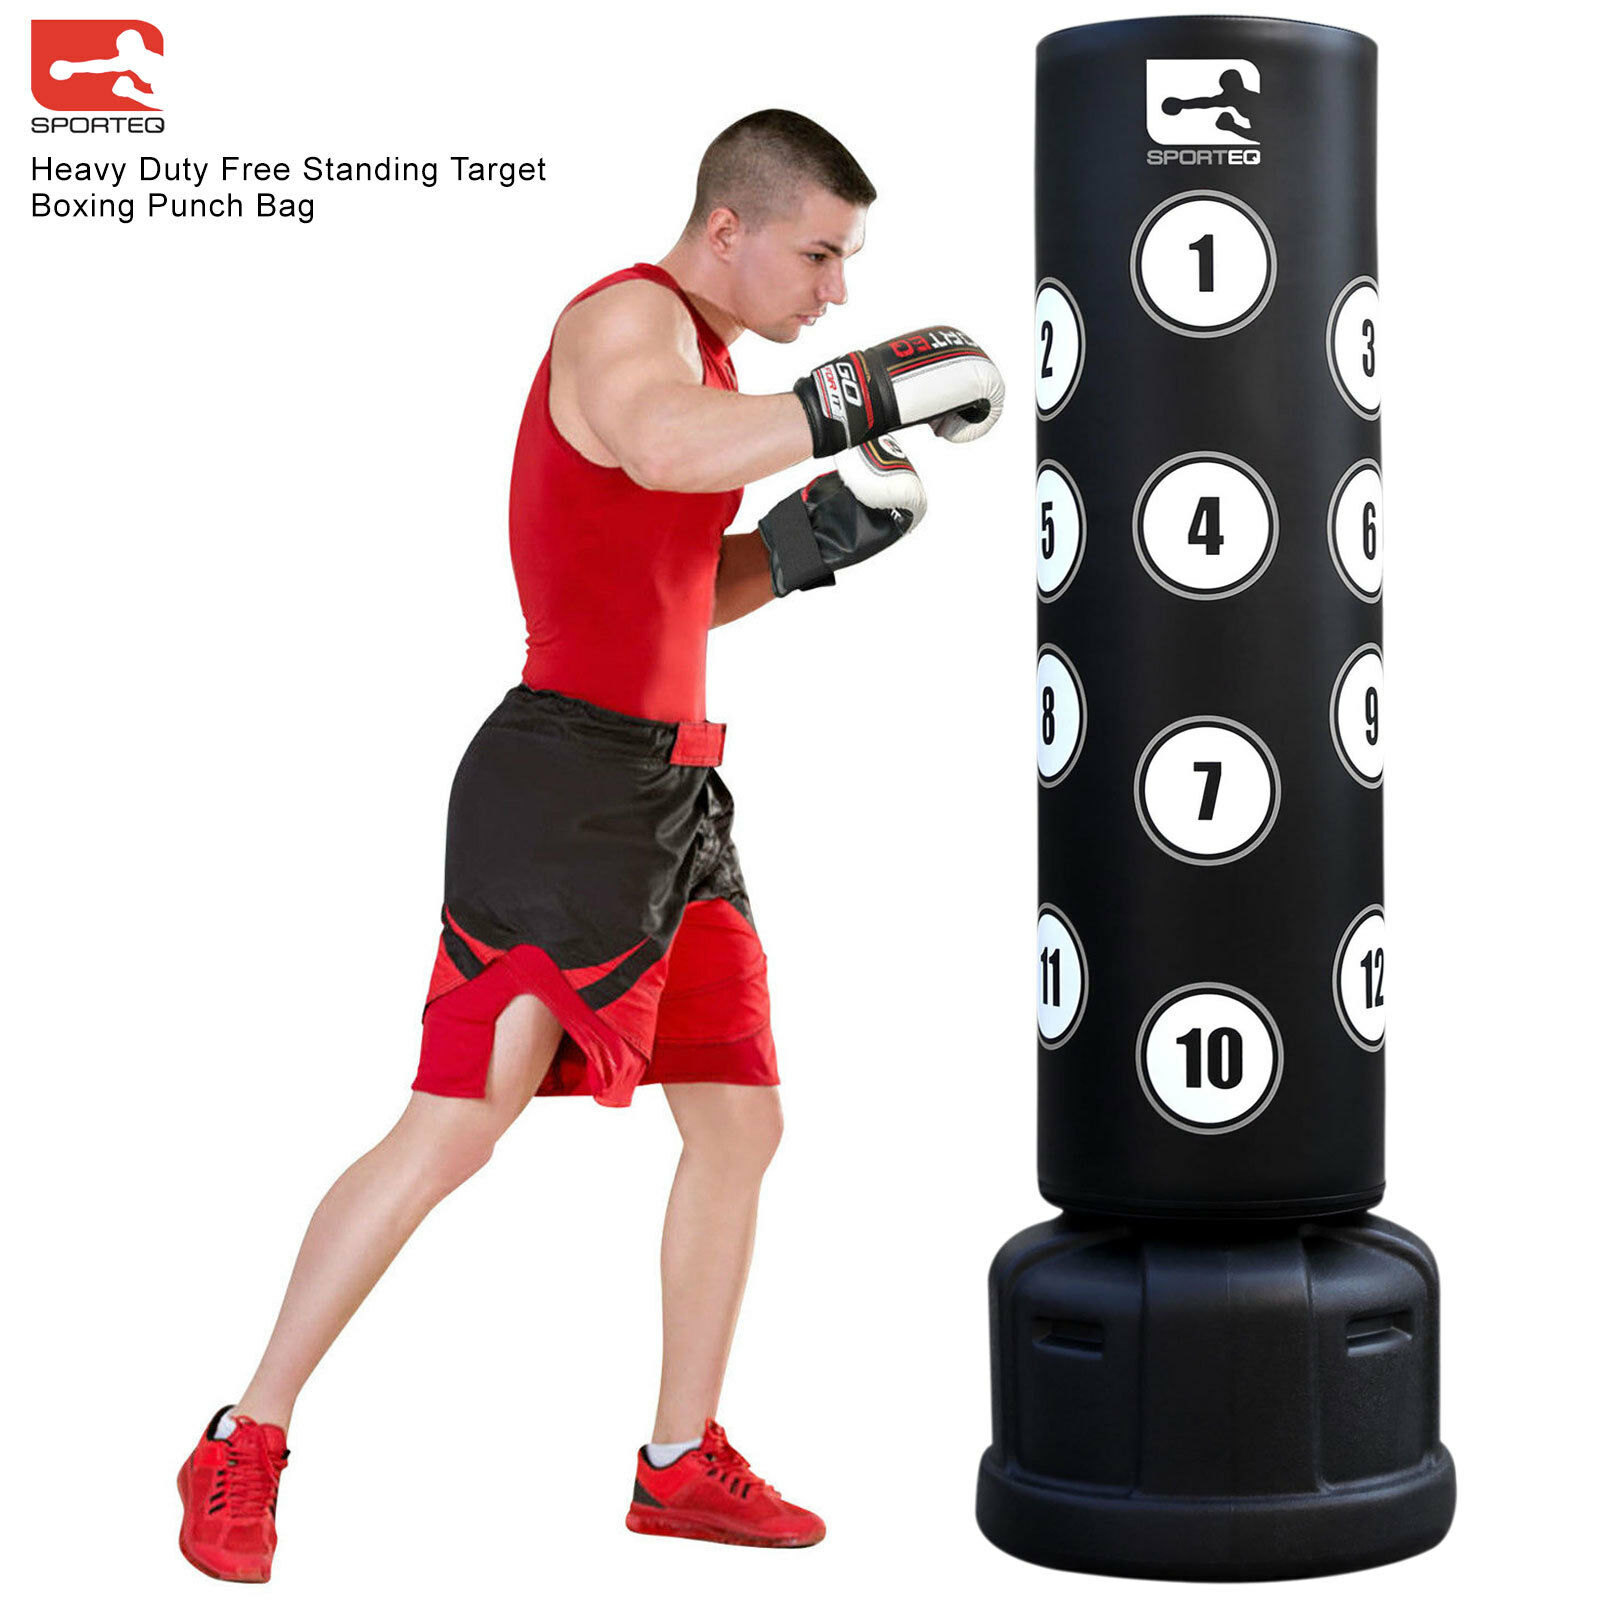 Sporteq 6FT New XXL Commercial Heavy Duty,Free Standing Target Boxing Punch Bag